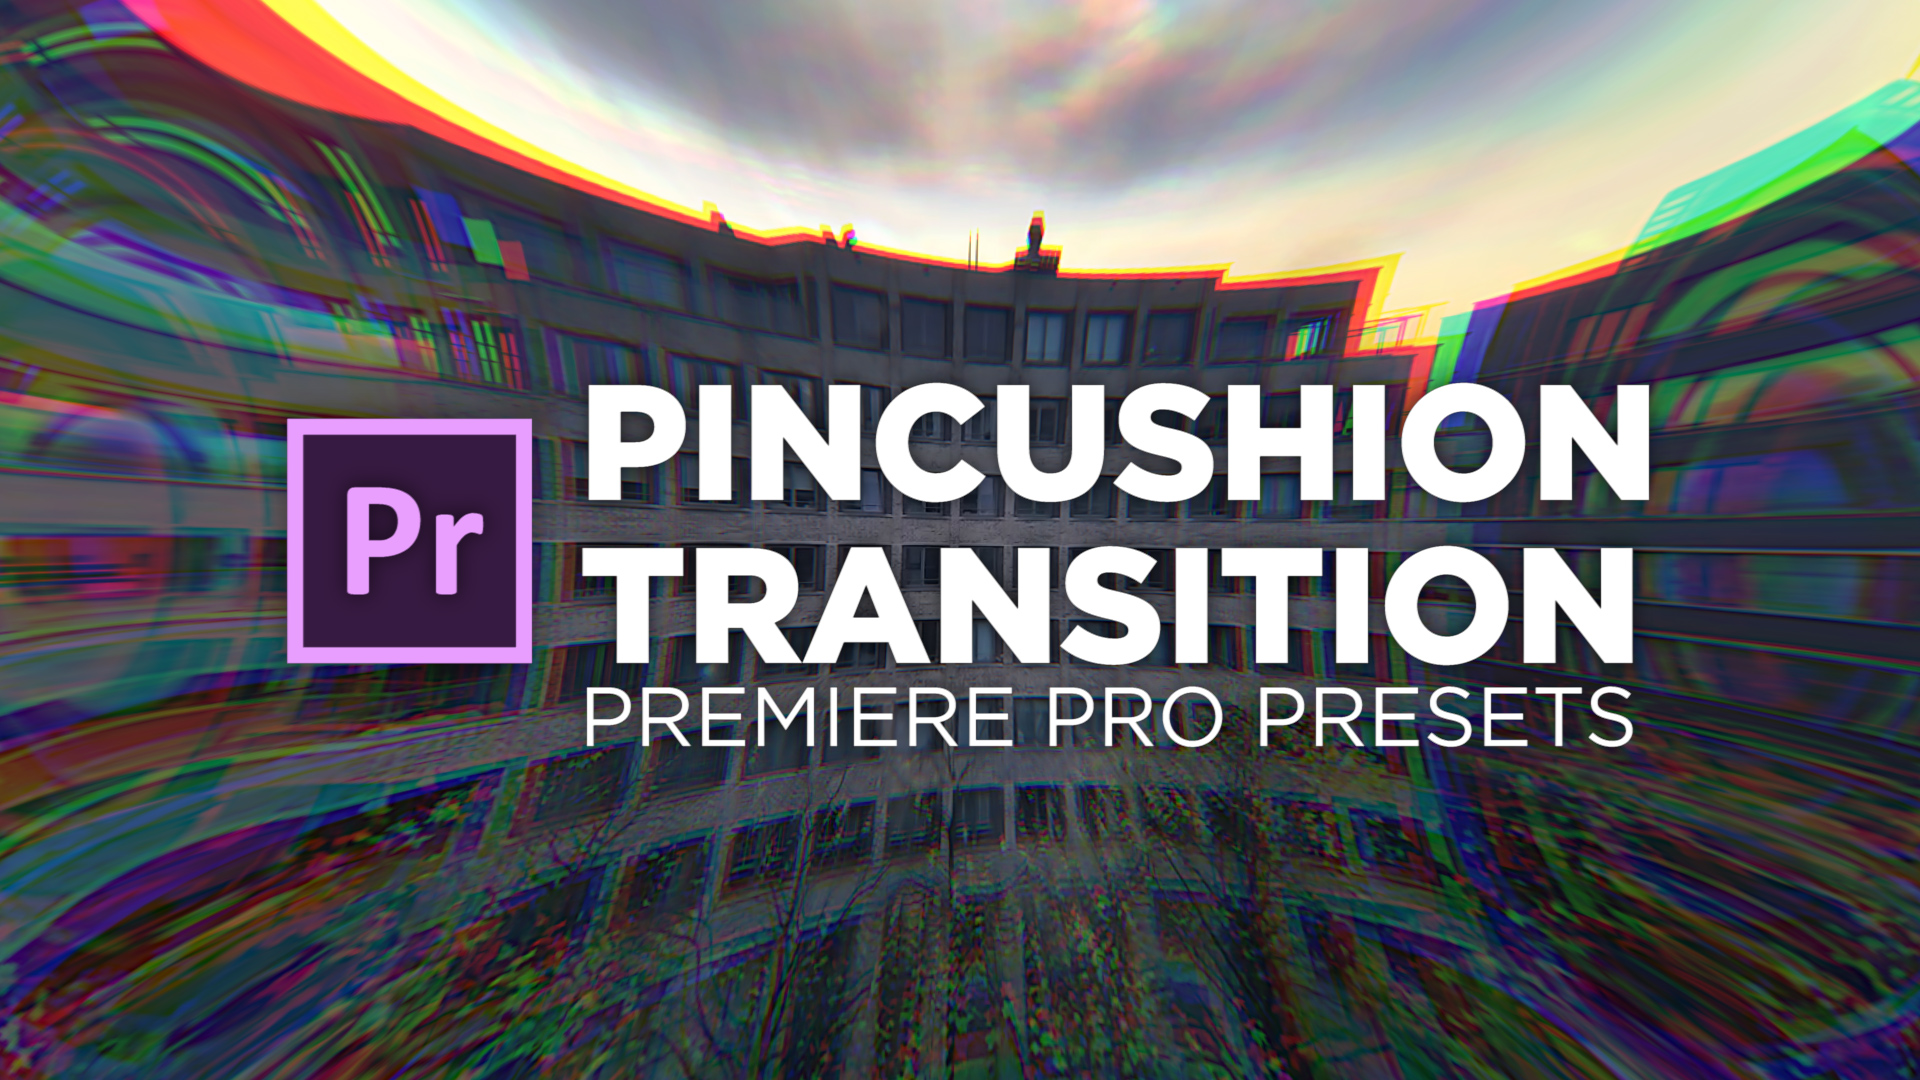 Pincushion Transition Preset #adobe #premierepro #videoediting